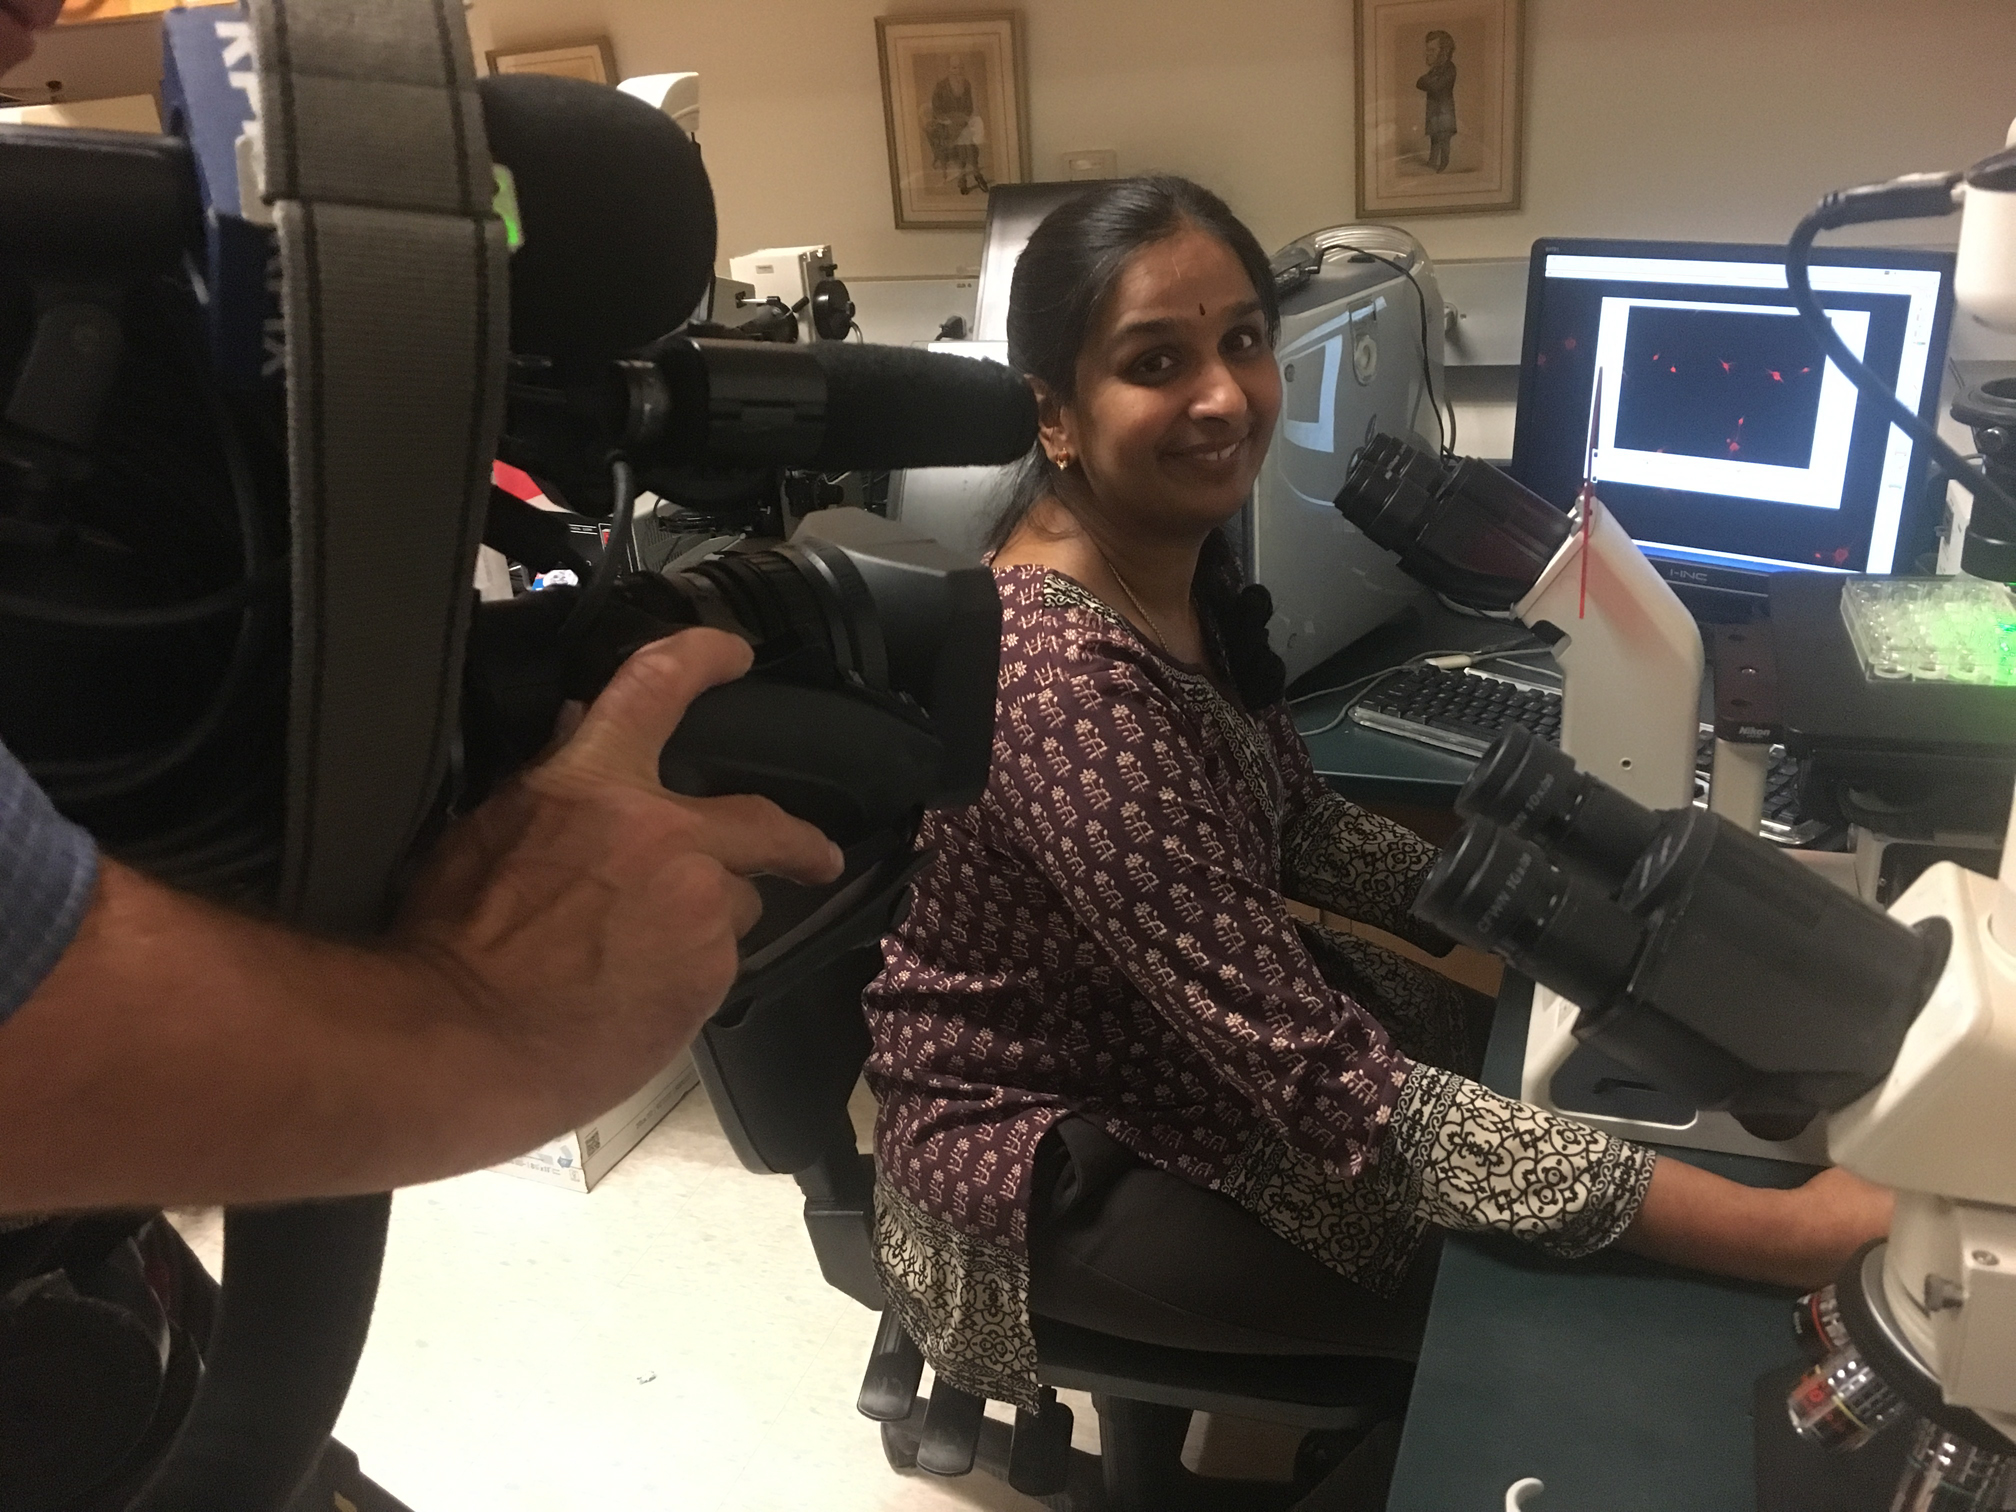 School of Science Professor Vidya Chandrasekaran was interviewed by CBS-5/KPIX-TV about plans to market gene-editing kits to the public.